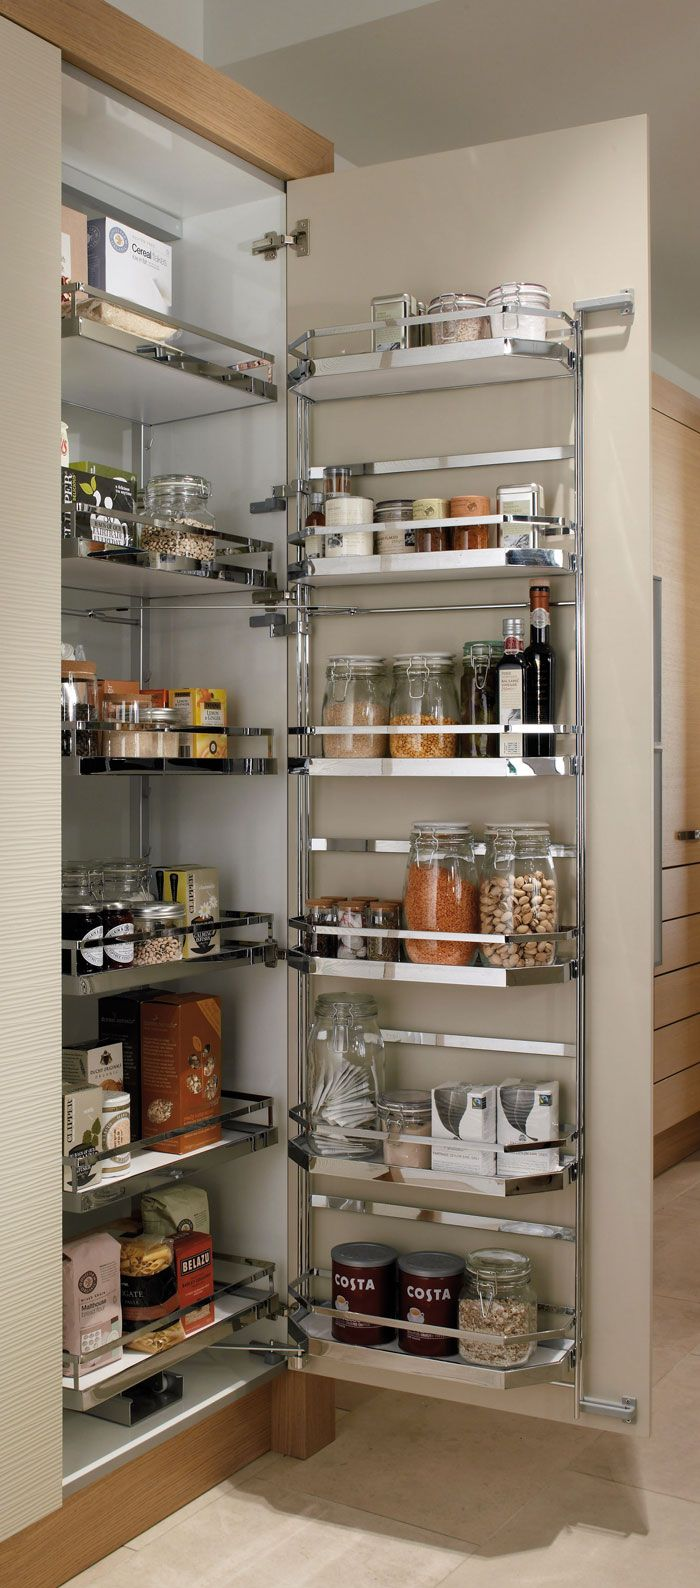 Kitchen Storage Unit Best 25 Kitchen Storage Ideas On Pinterest  Kitchen Sink